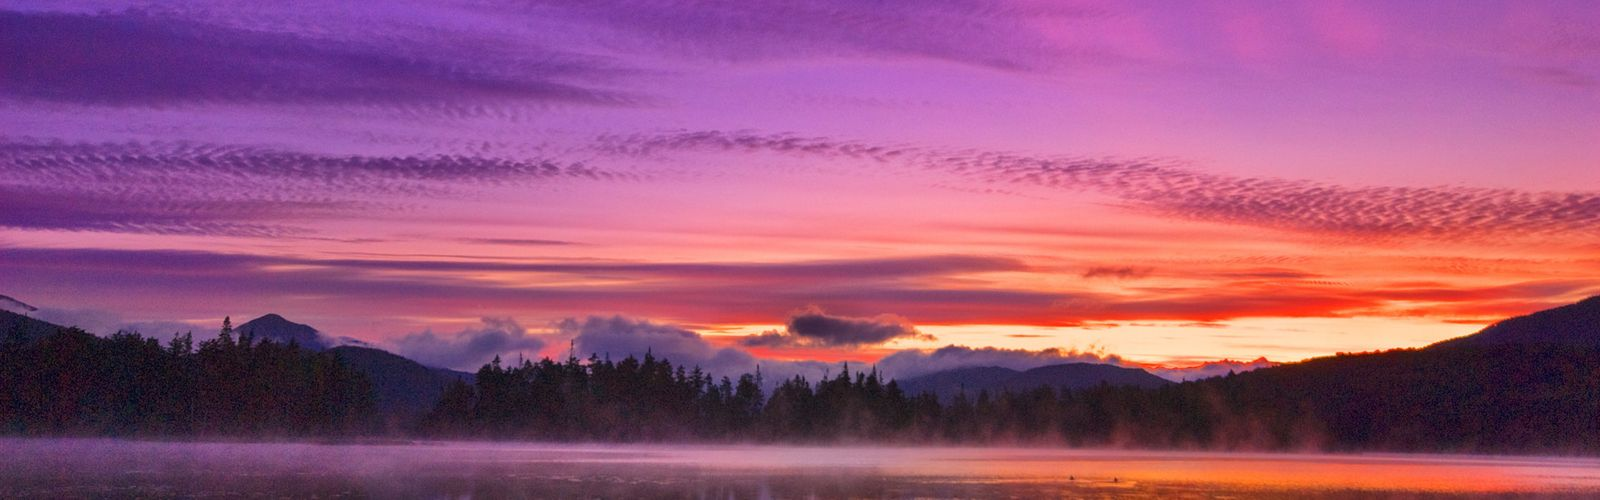 Magical colors in the Adirondacks